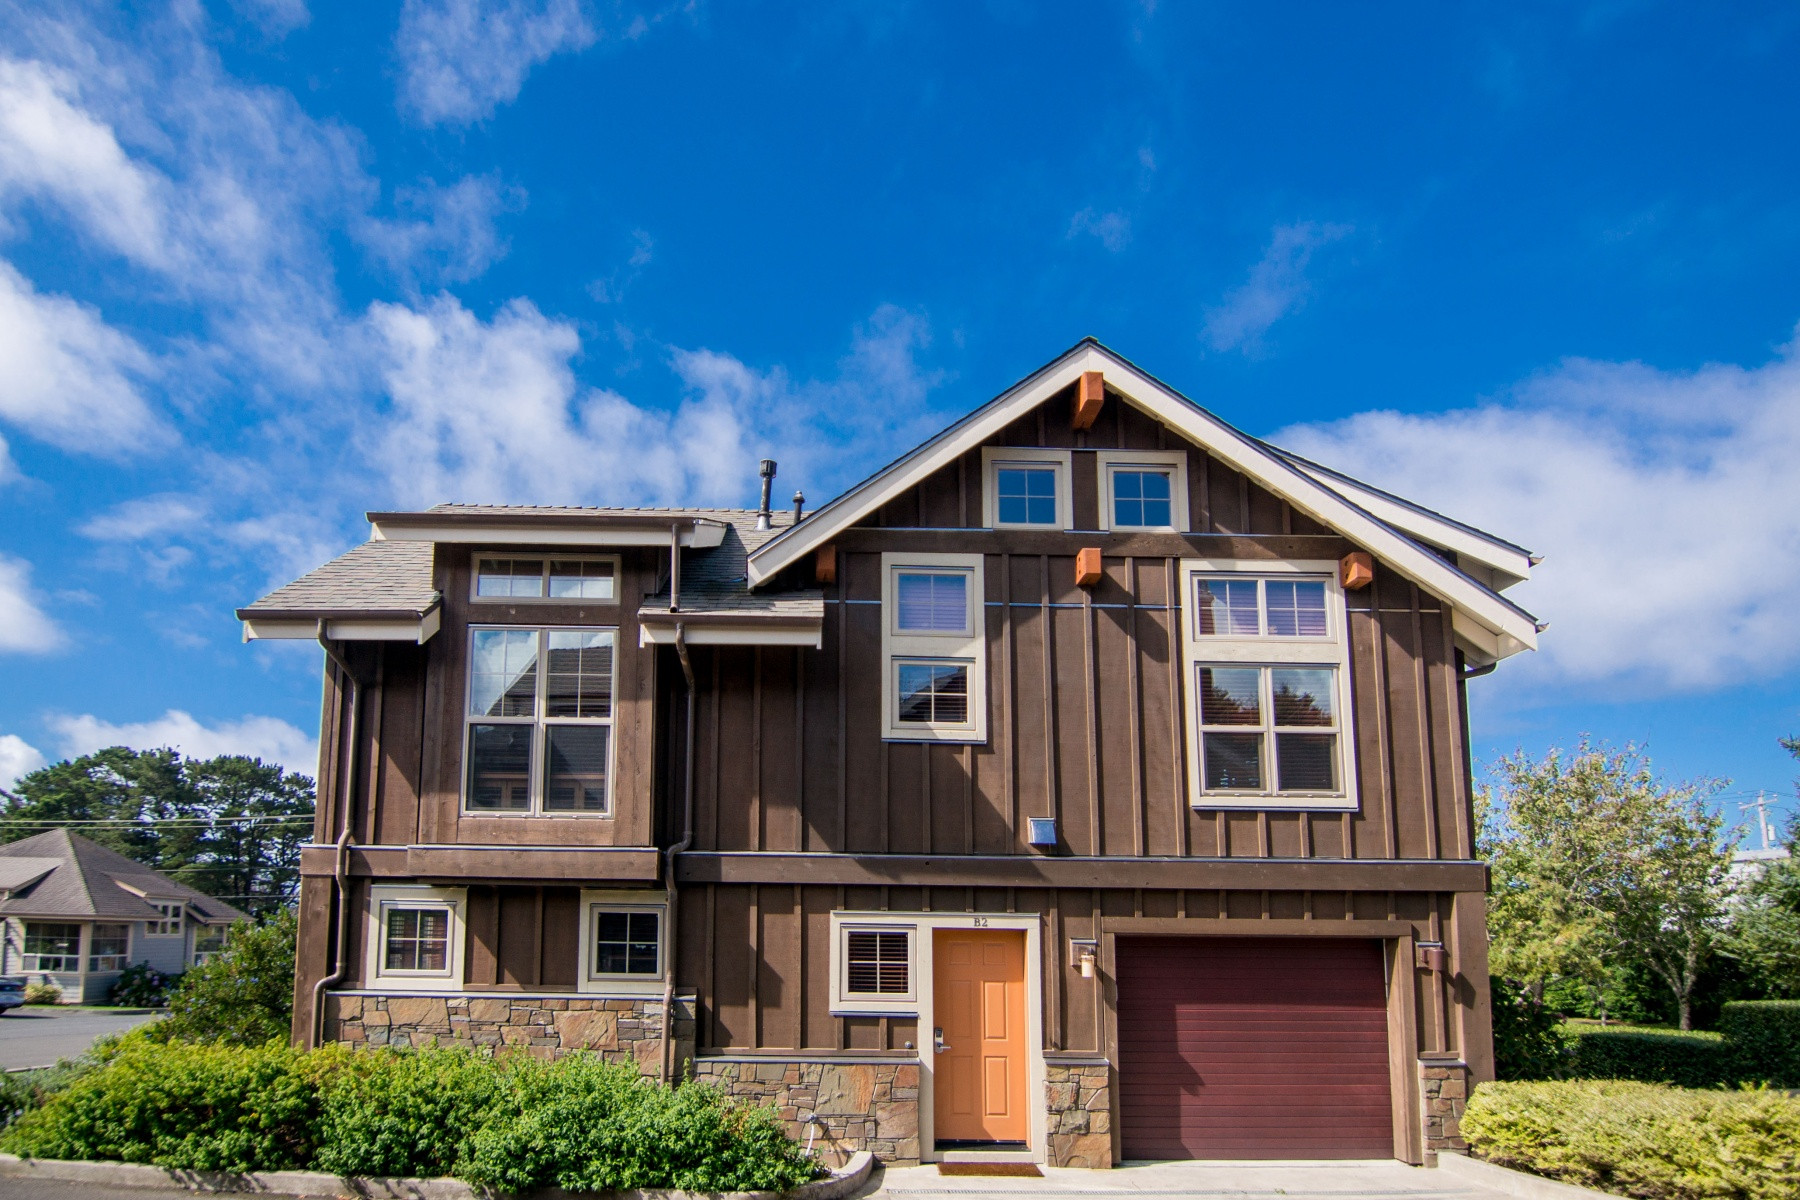 Cannon Beach Townhouse. 1/12 Share. 132 E Surfcrest ST B2 B2 Cannon Beach, Oregon 97110 United States